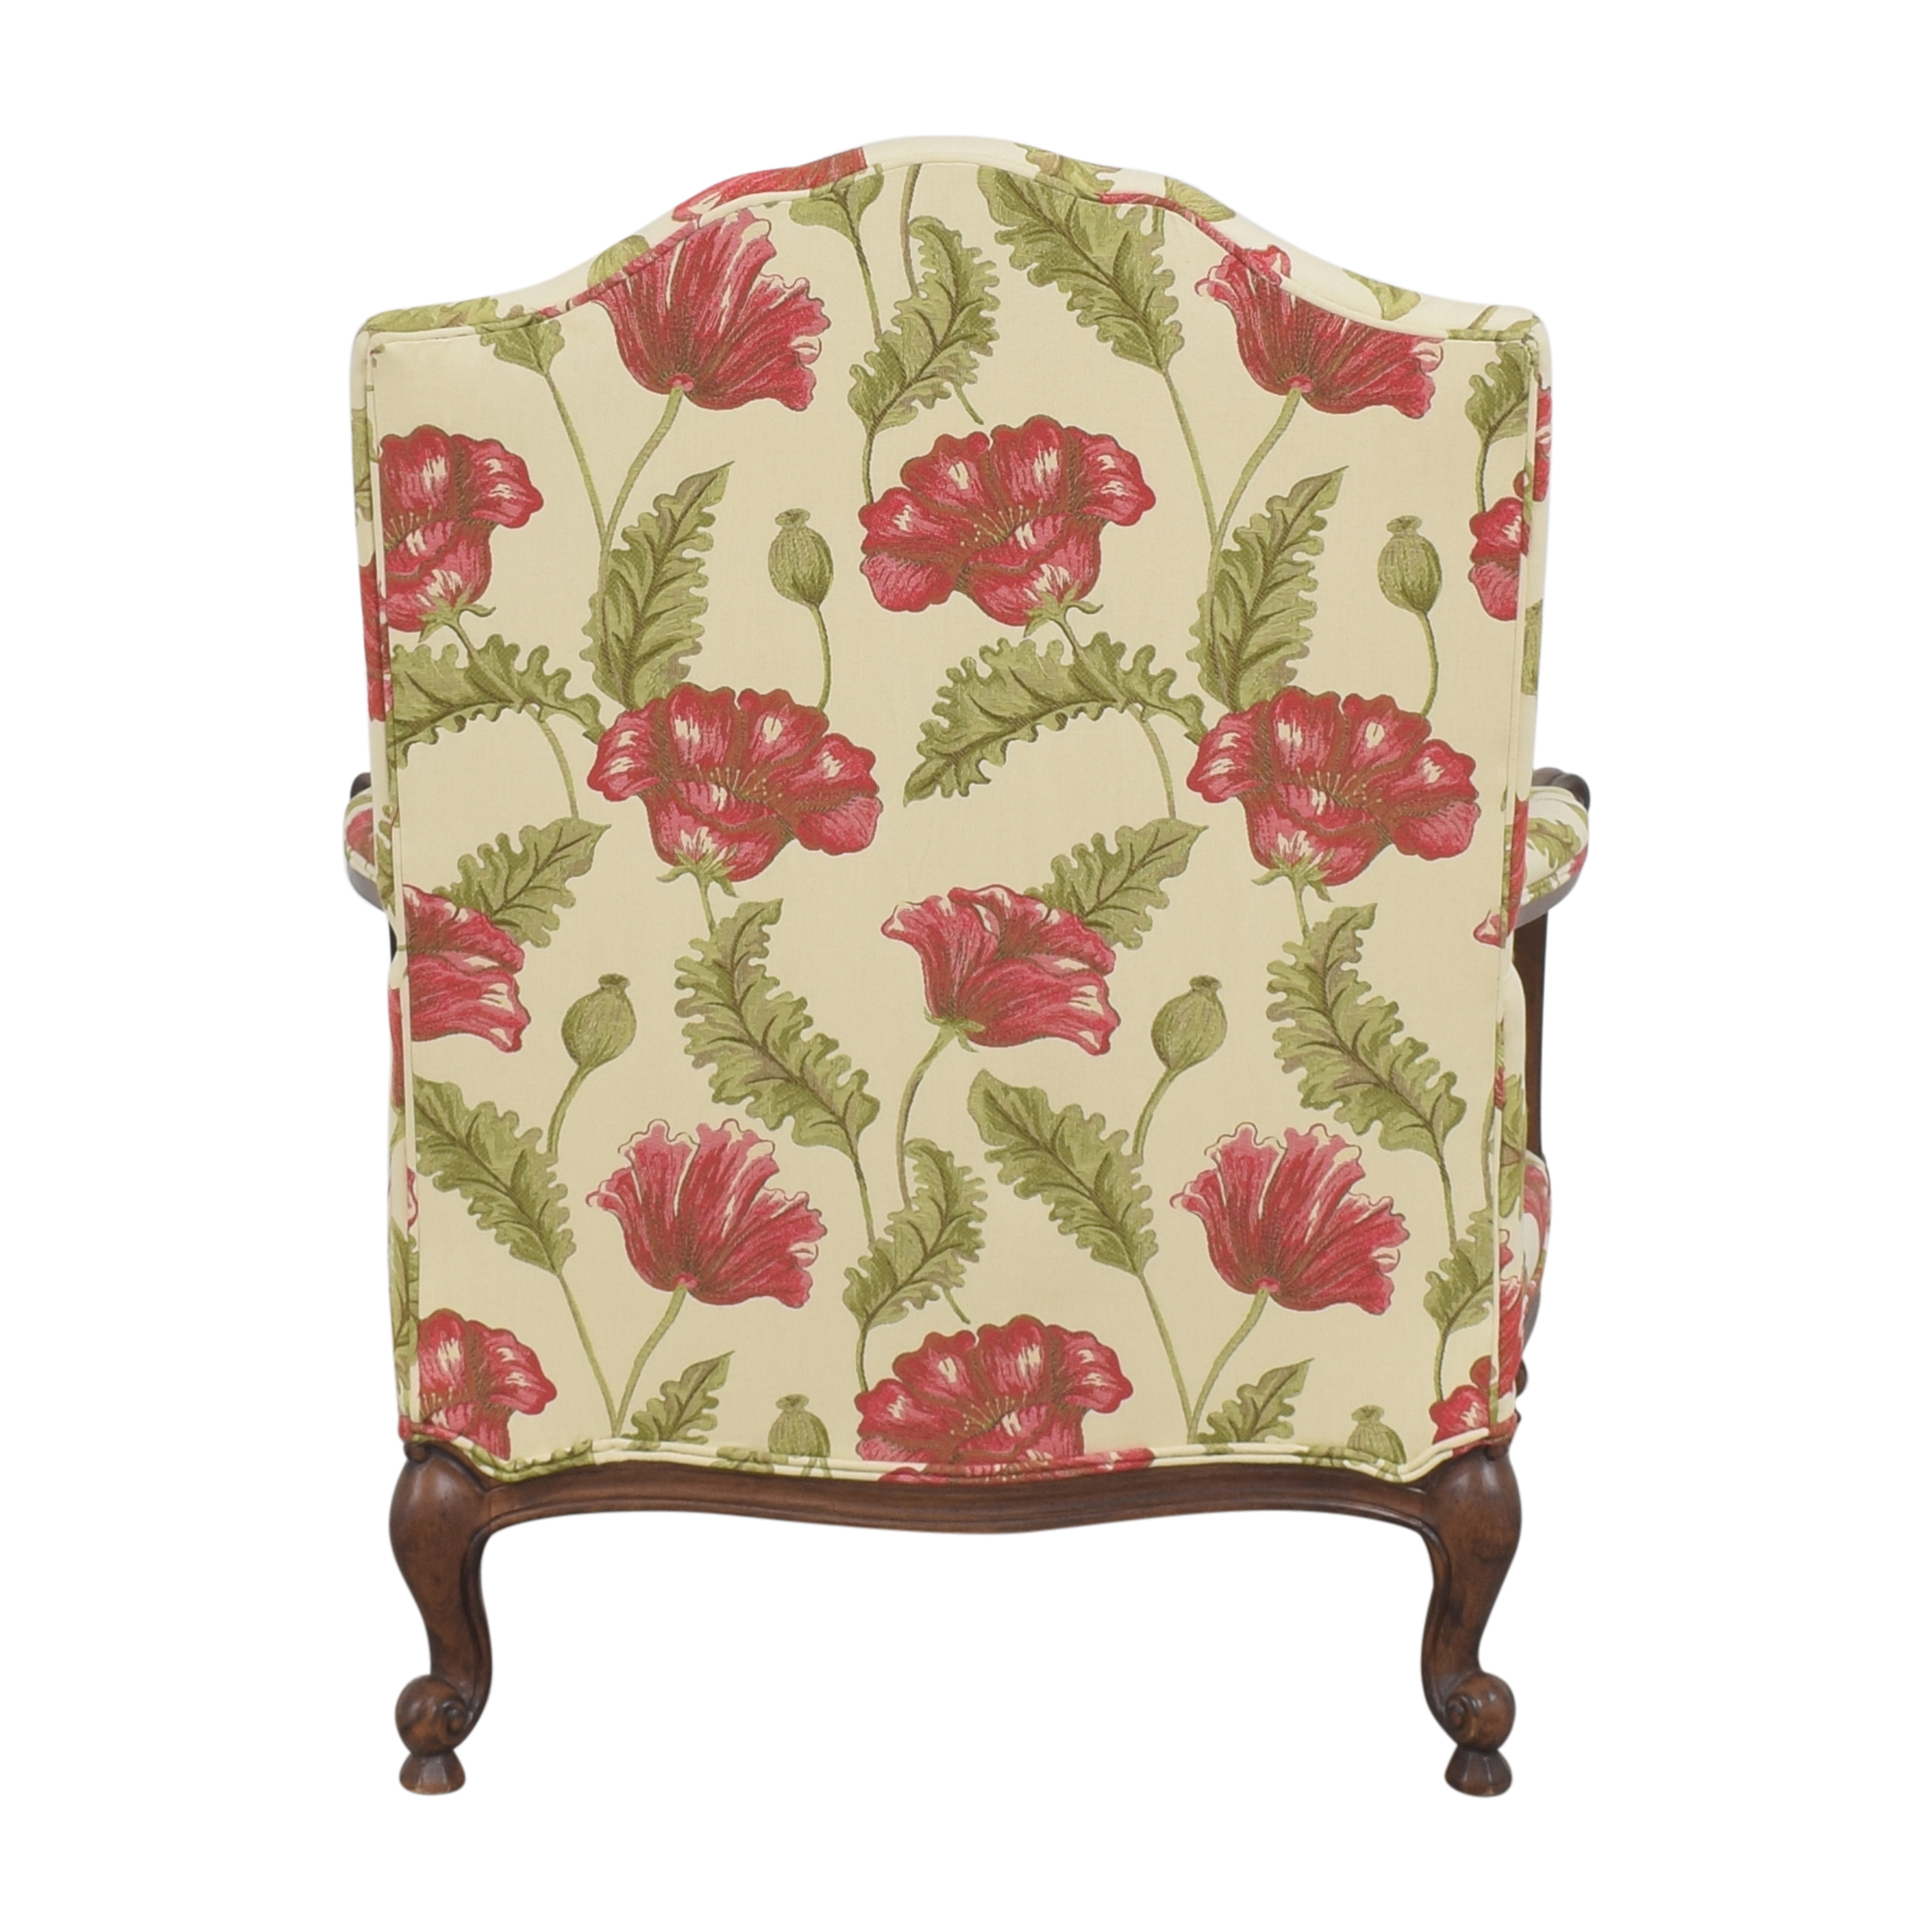 buy Clayton Marcus Floral Chair with Ottoman Clayton Marcus Accent Chairs